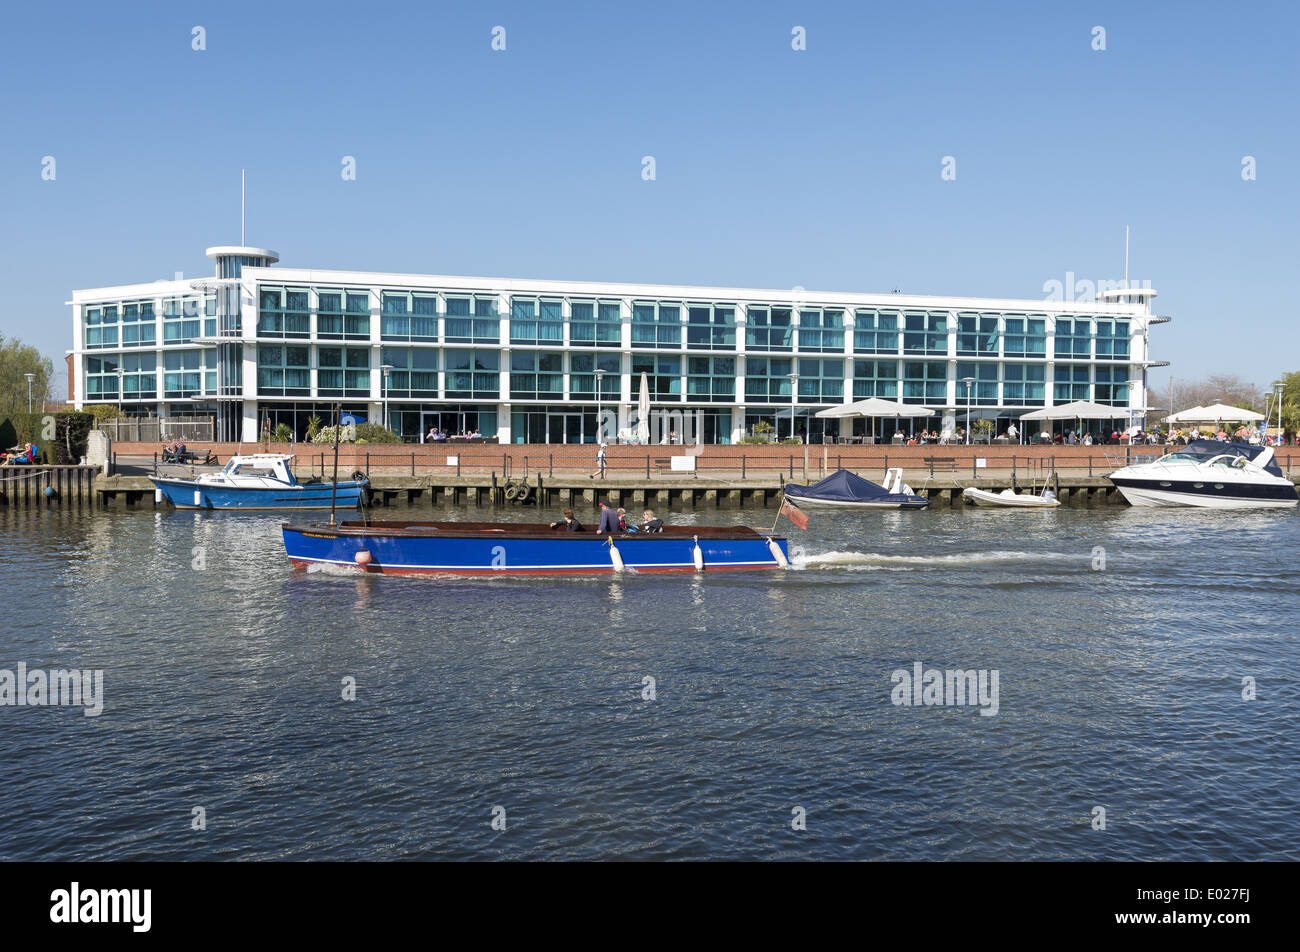 The Captains Club Hotel on Christchurch Harbour in Dorset England UK - Stock Image